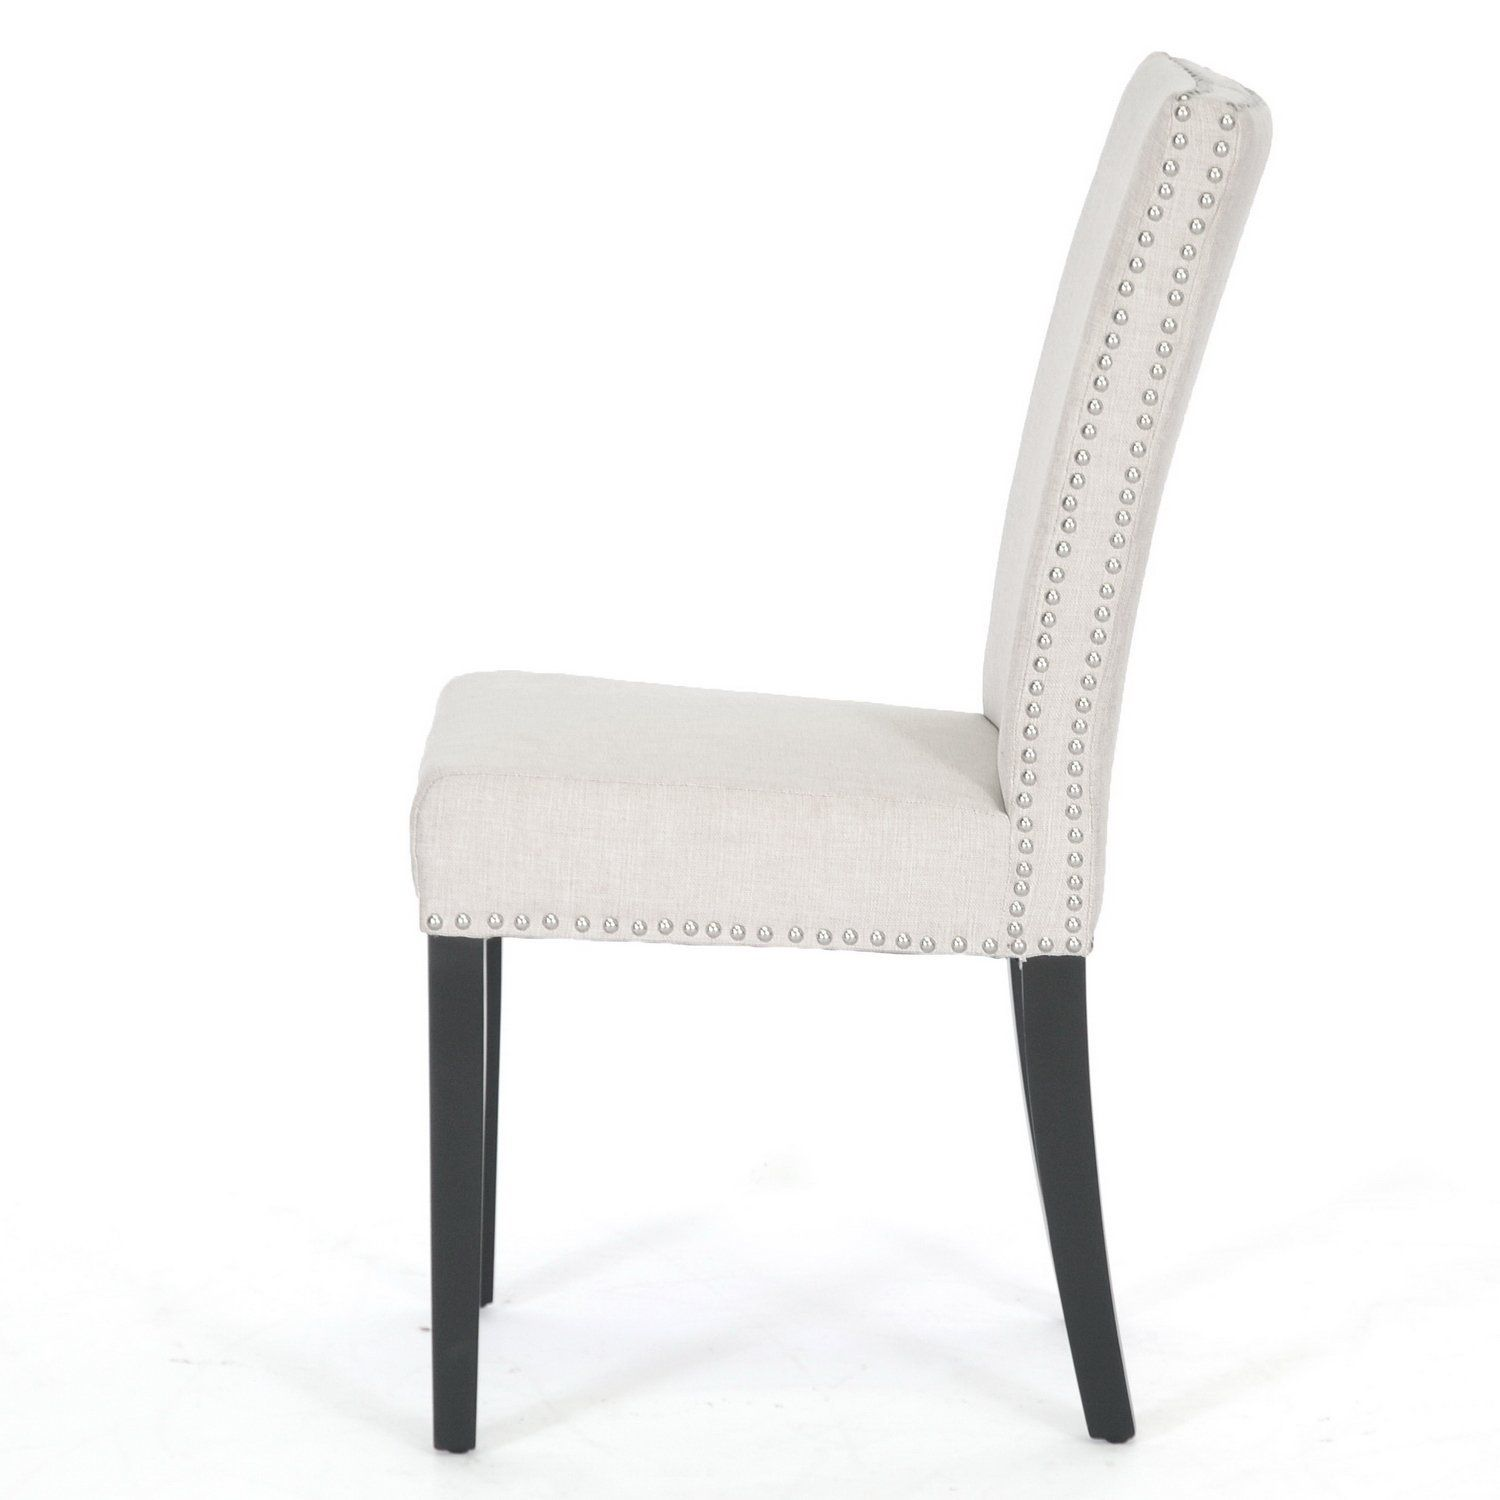 Contemporary Dining Chairs Painting Of White Upholstered Dining Chair Perfect